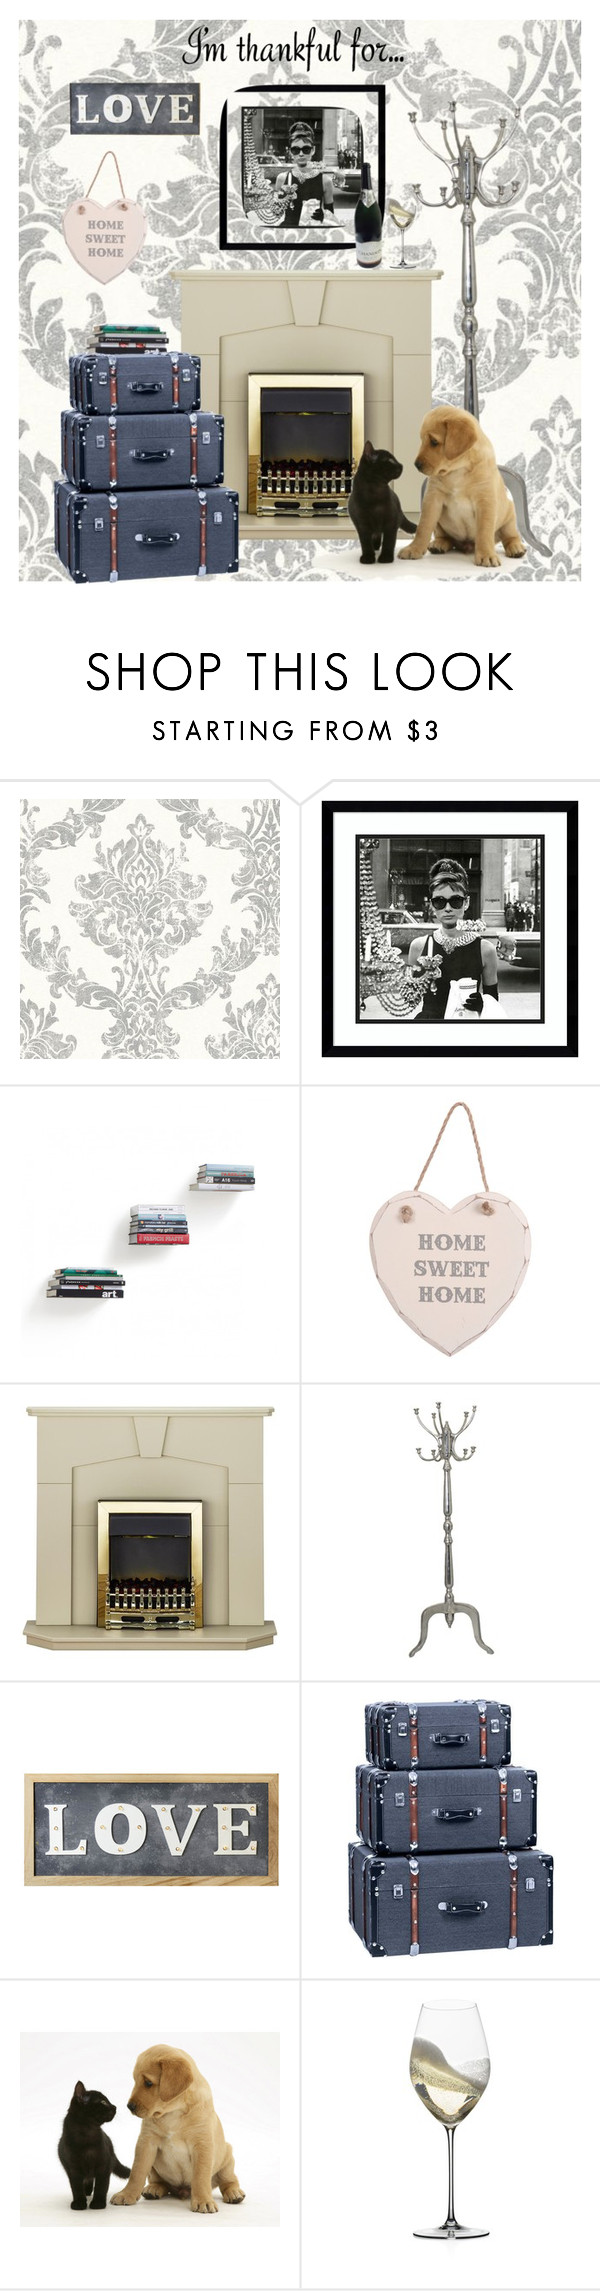 """Thankful for the little things"" by drunkenfashionist ❤ liked on Polyvore featuring Amanti Art, Umbra, Parlane, Riedel and imthankfulfor"